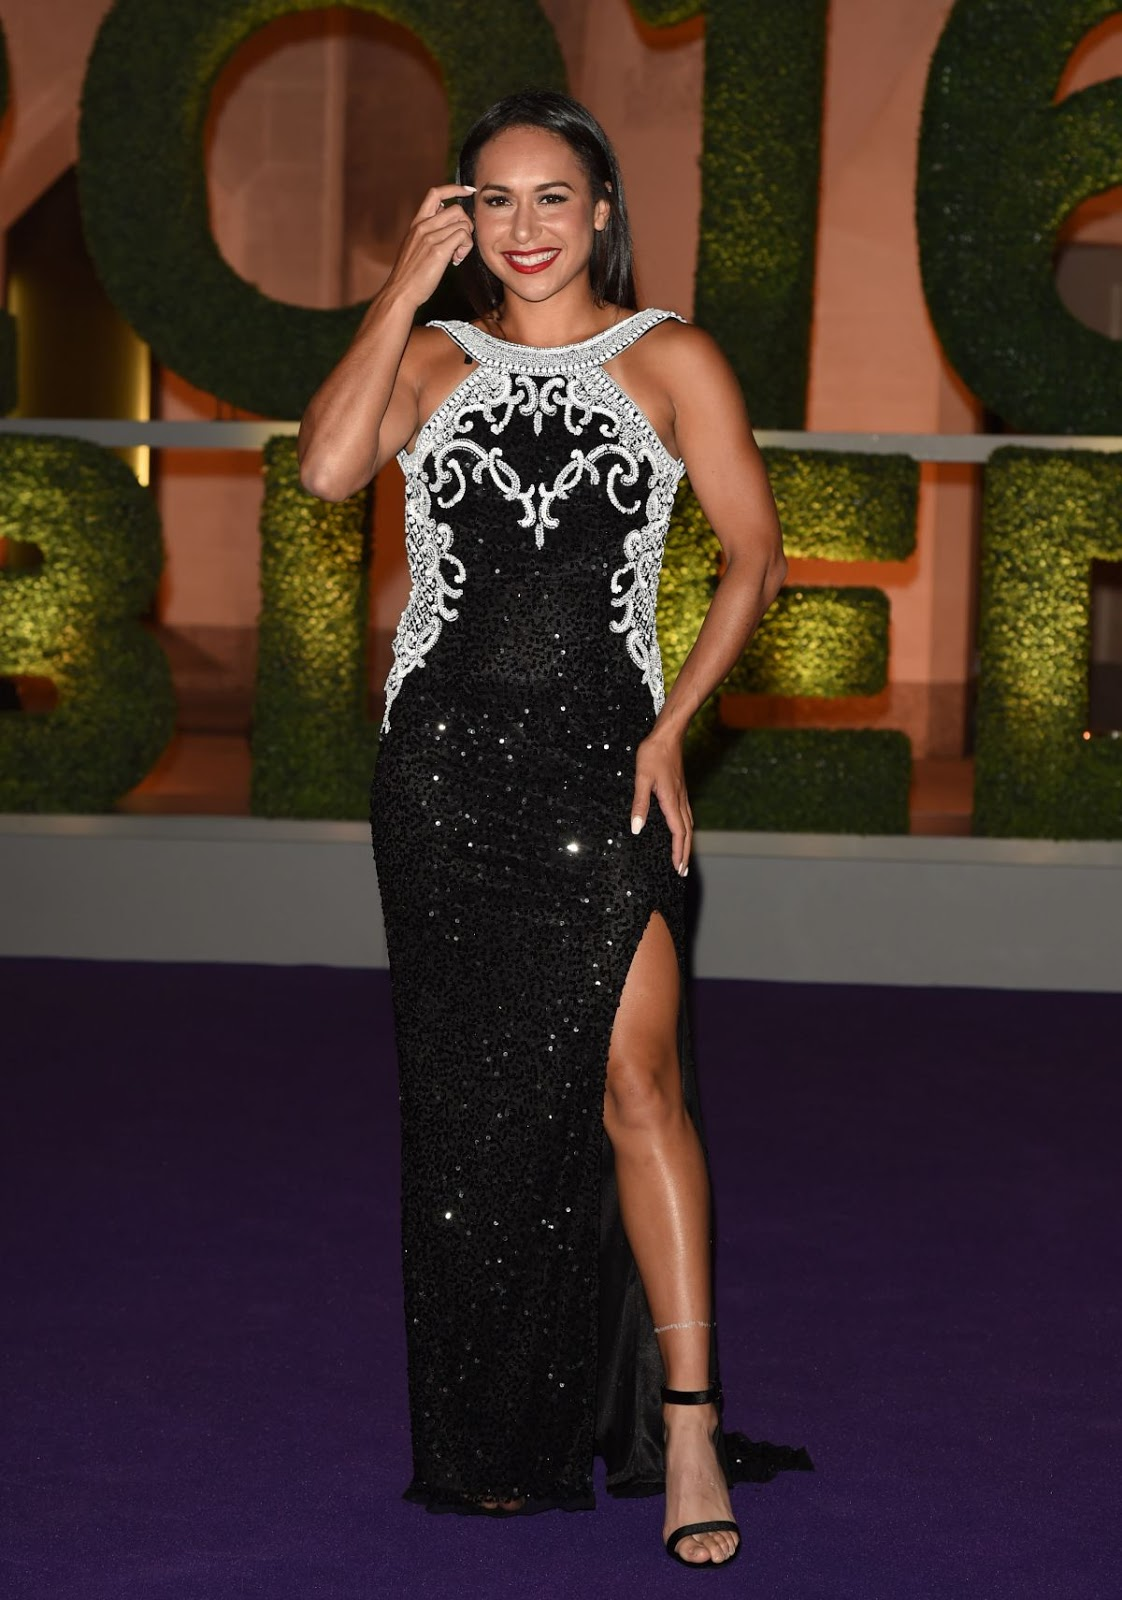 HD Photos of Heather Watson at Wimbledon Champions 2016 Dinner in London